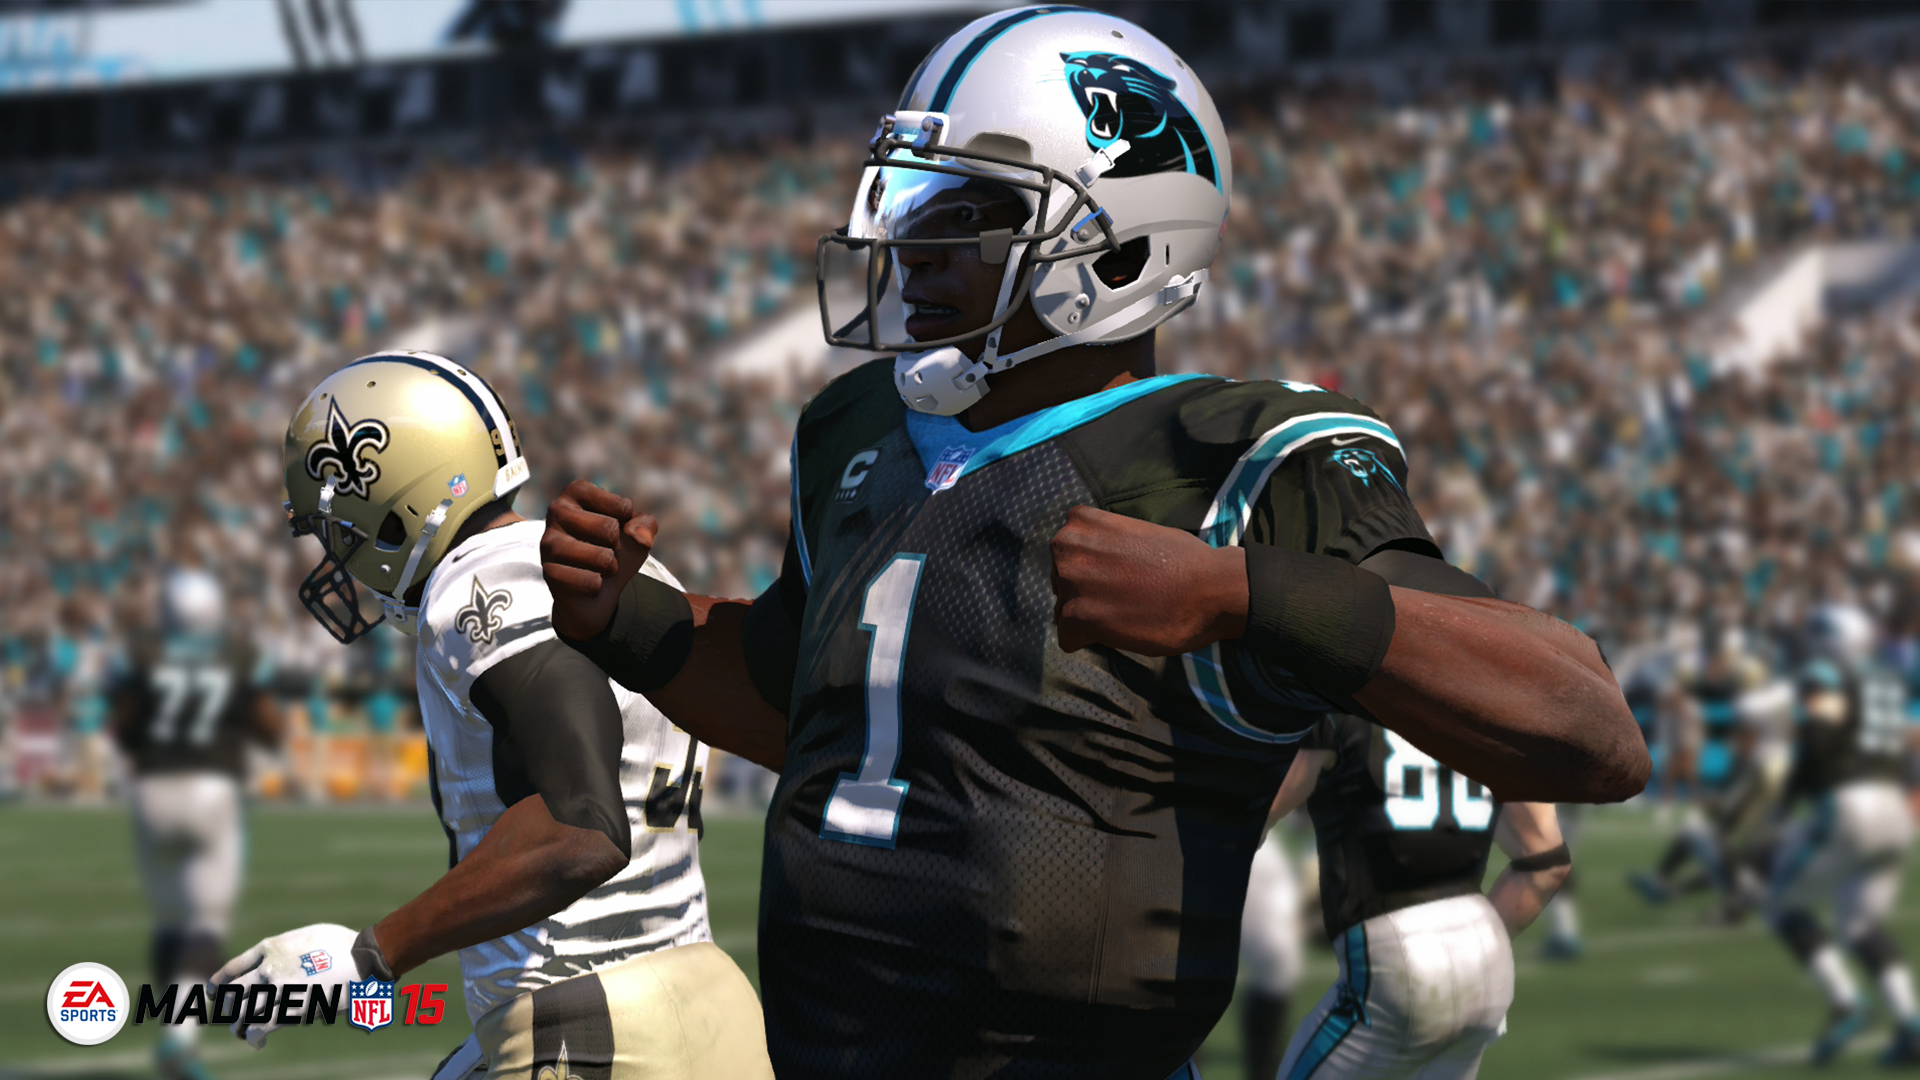 Glitches aside, Madden NFL 15 truly is one of the better entries in the series in a long time.